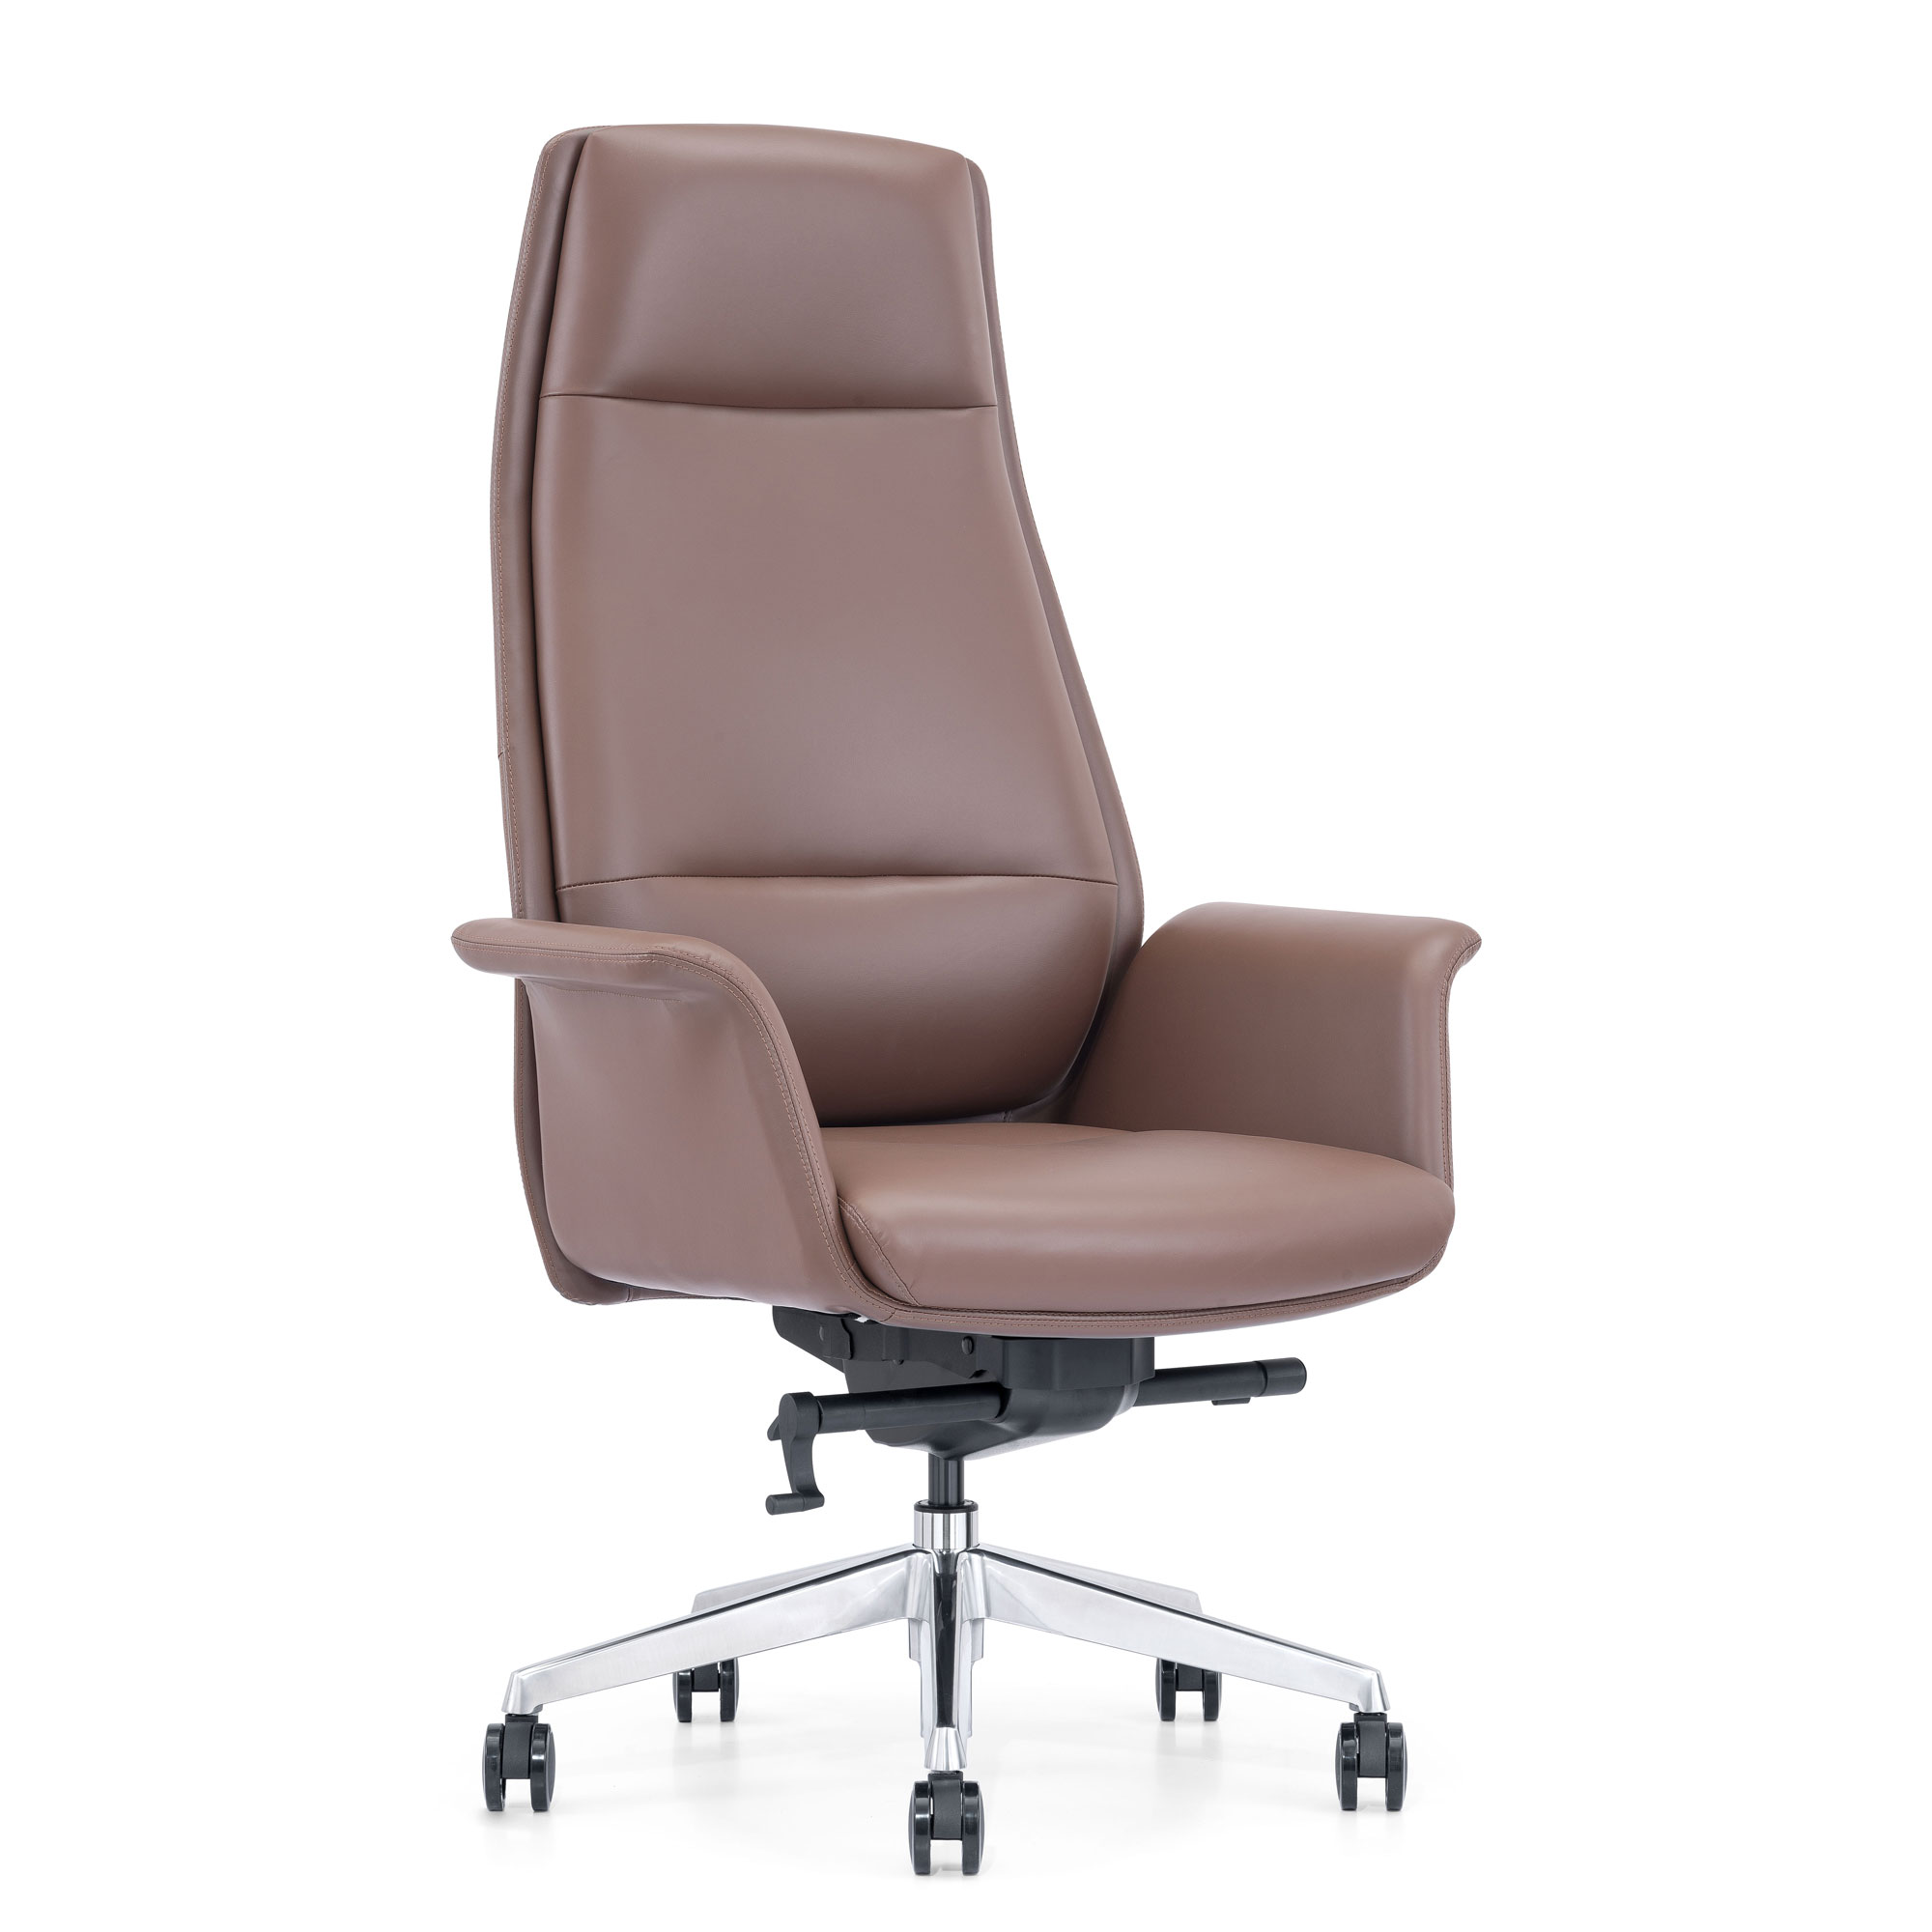 Best Home Office Chair for Executives